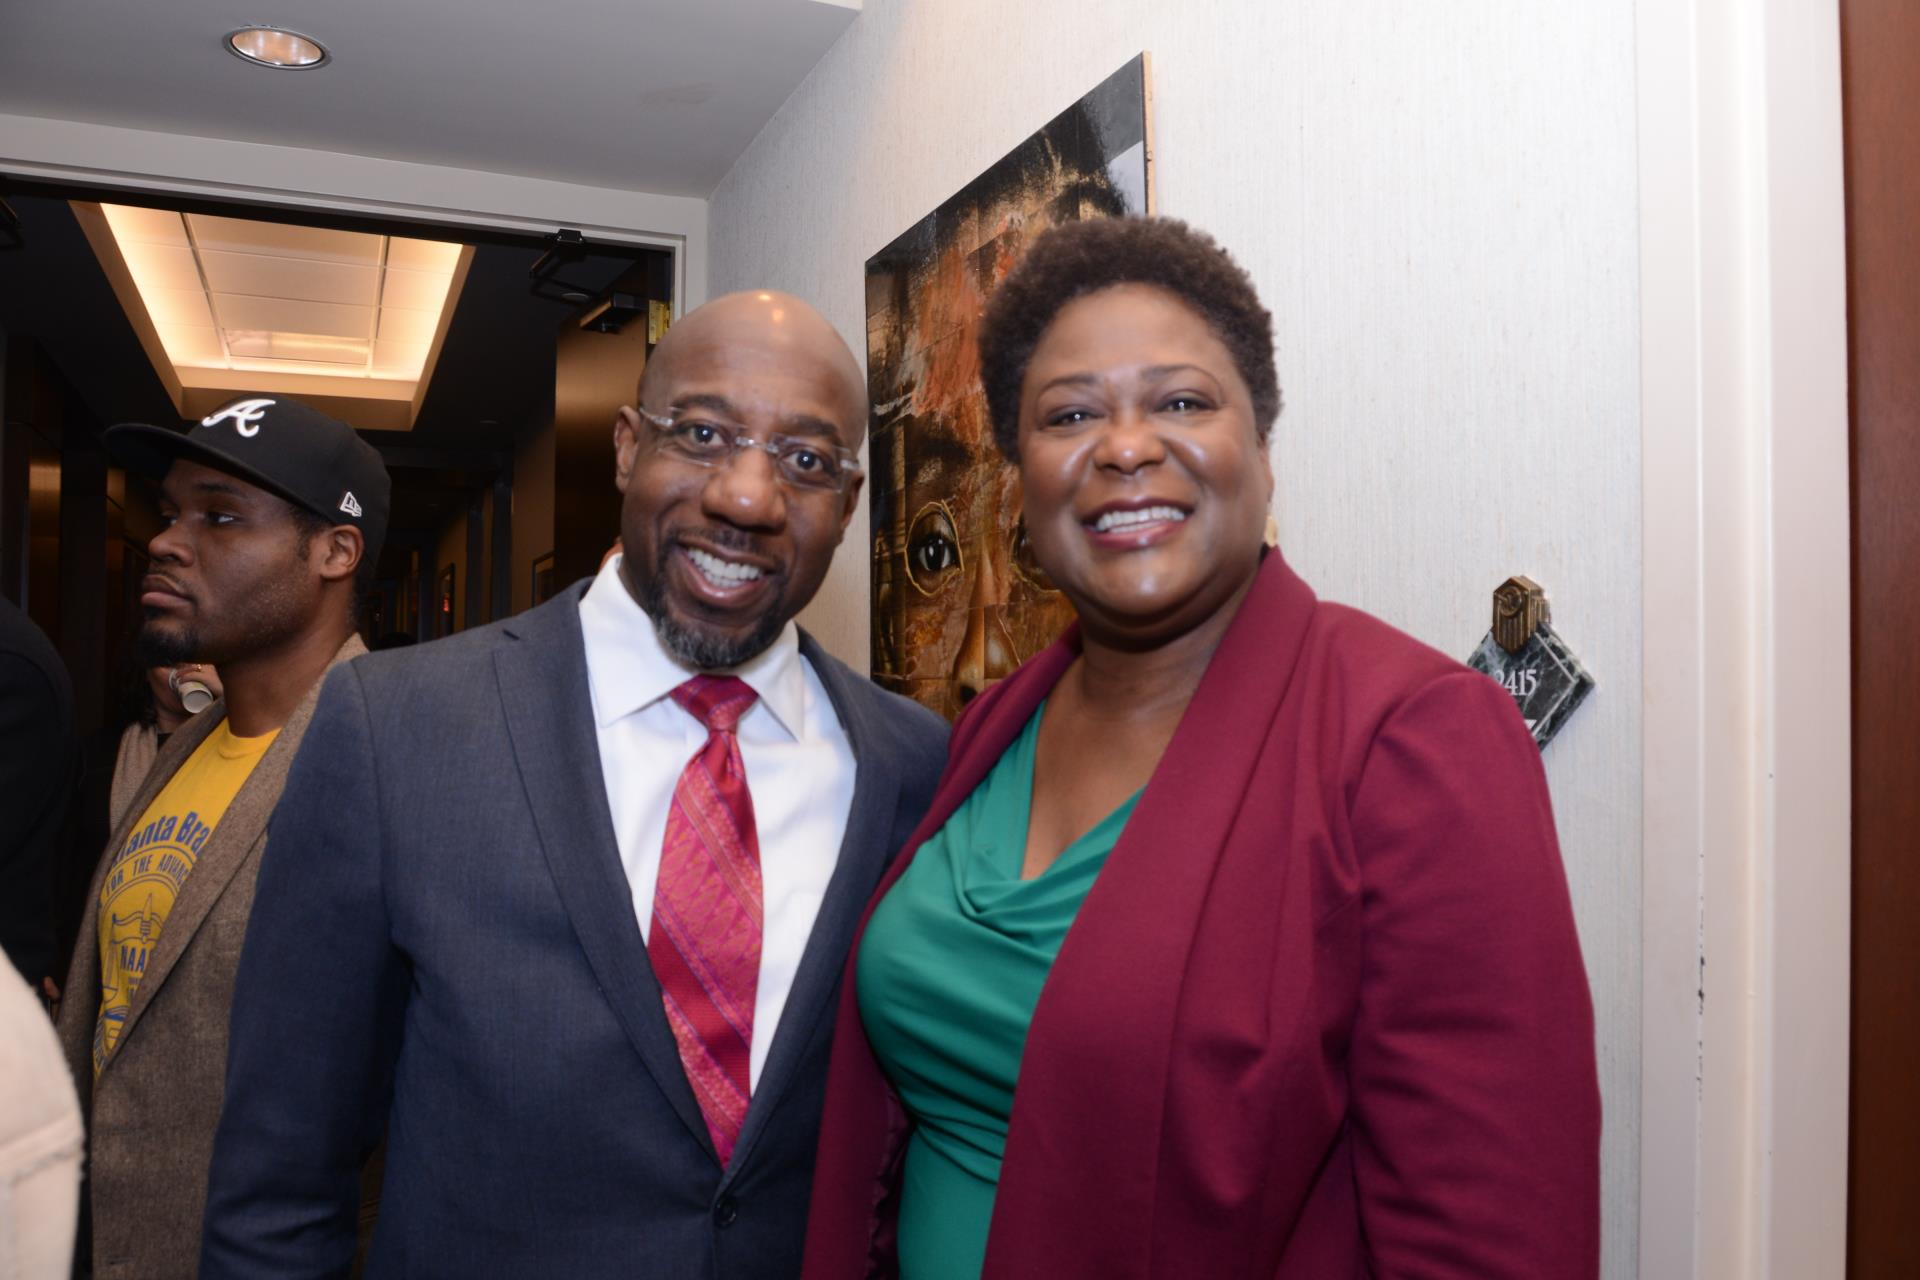 President Moore with Rev. Warnock